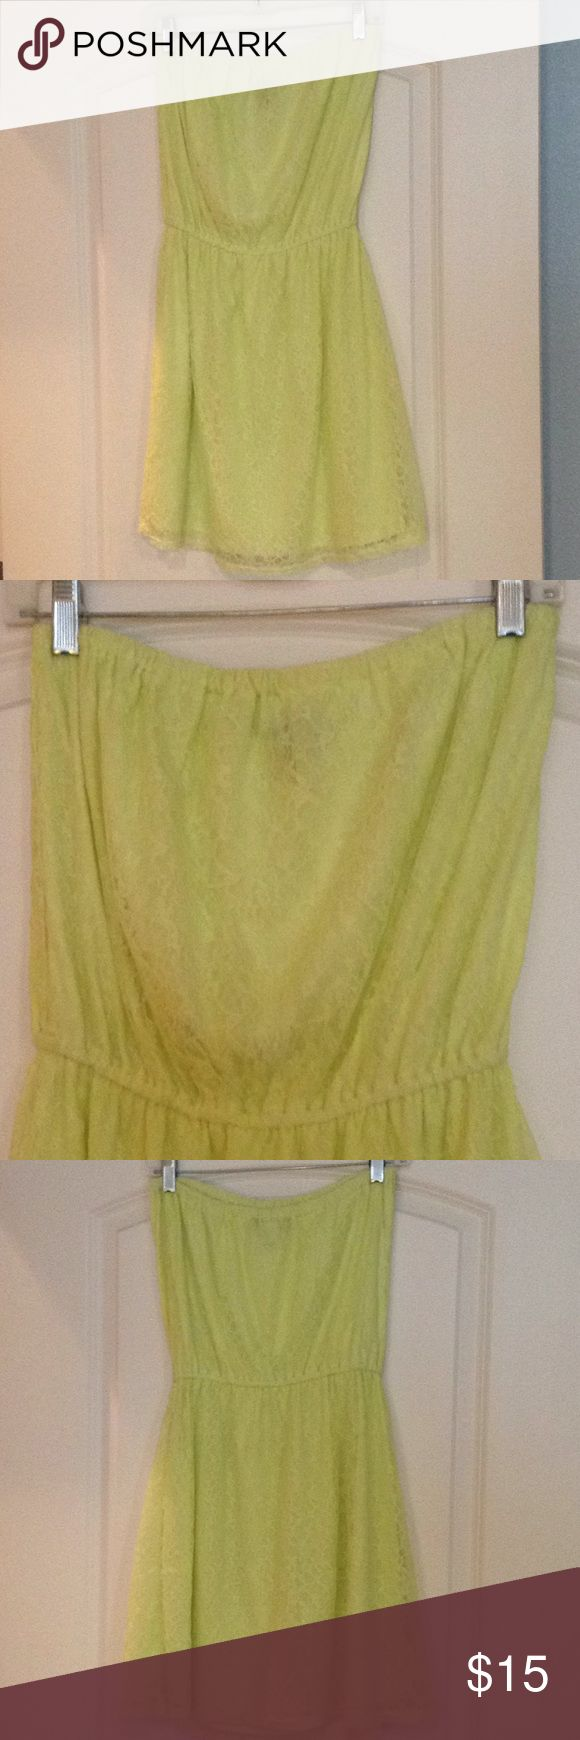 Fun and flirty lace strapless slip on dress! Perfect for spring break beach weather or night out! Color is lime green; slip dress with lace overlay by Victoria's Secret. Elastic around waist and top. Size M, I wore as an 8. The dark area around the neck is the VS tag showing thru the material. There is one area on the back of the dress where the lace is slightly dis colored. I didn't notice until photographing. Not noticeable especially being on the back. PINK Victoria's Secret Dresses…